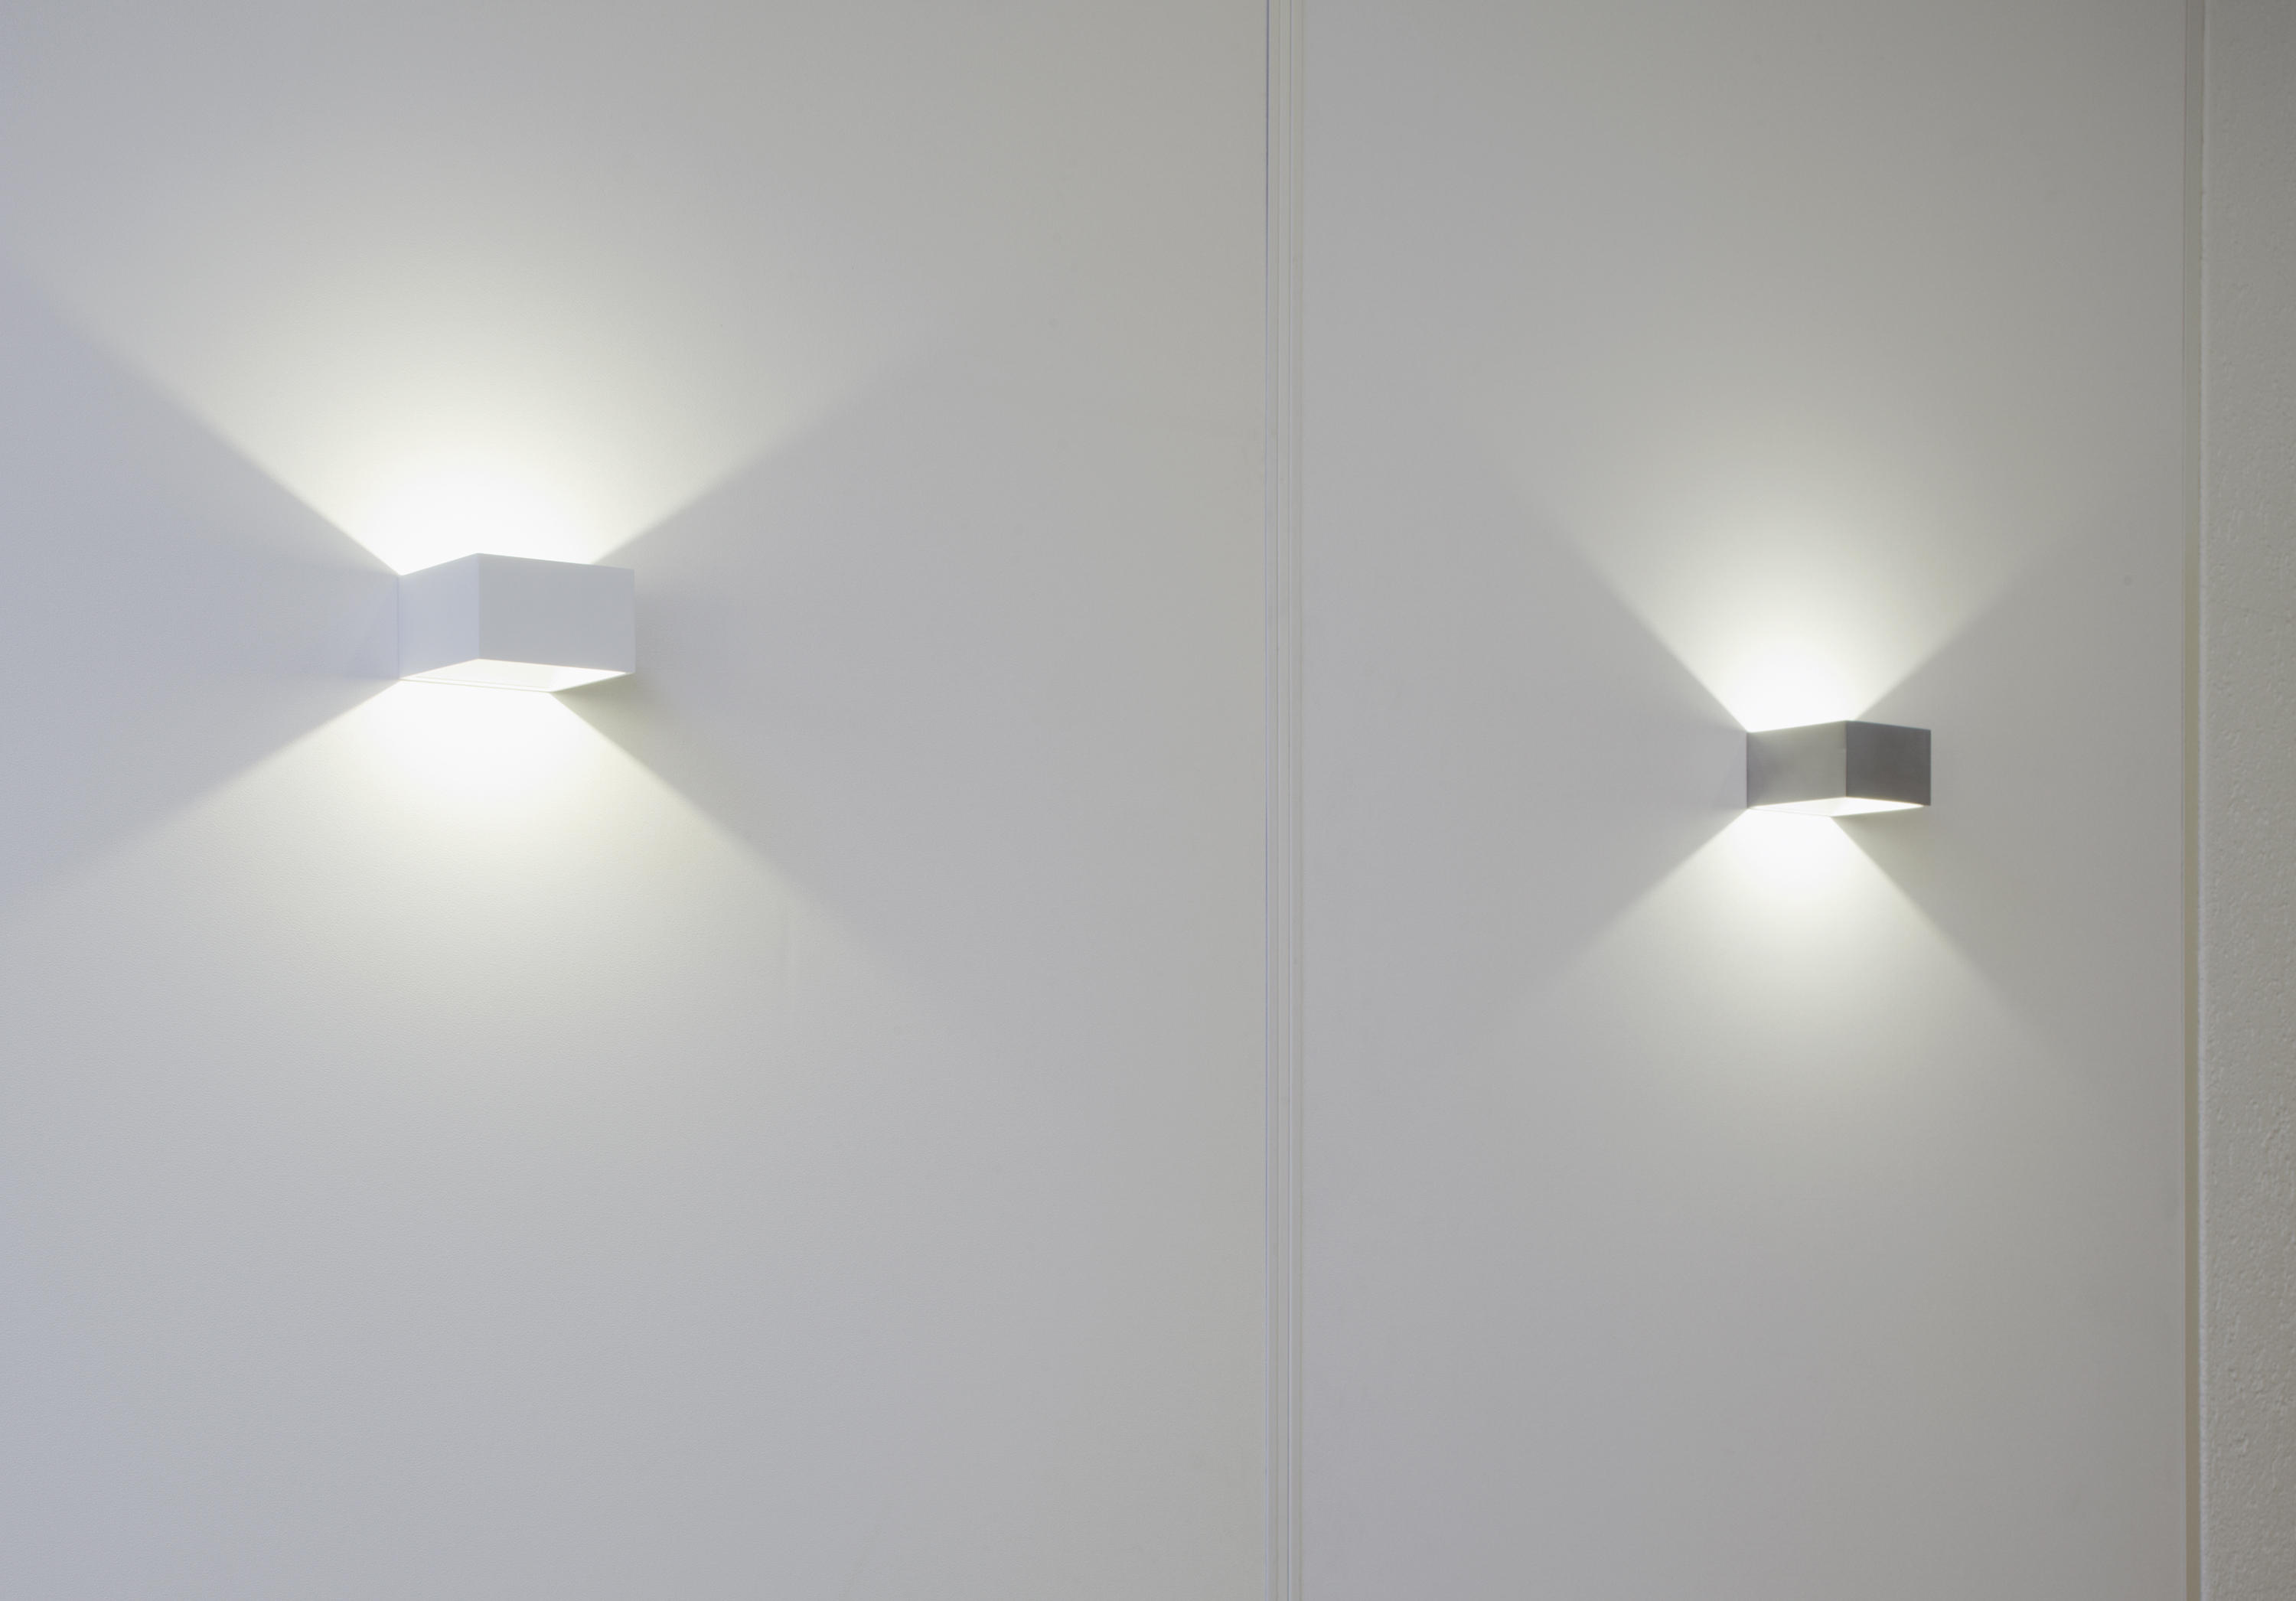 Lim led wall sconce general lighting from unex architonic for Led wandleuchte